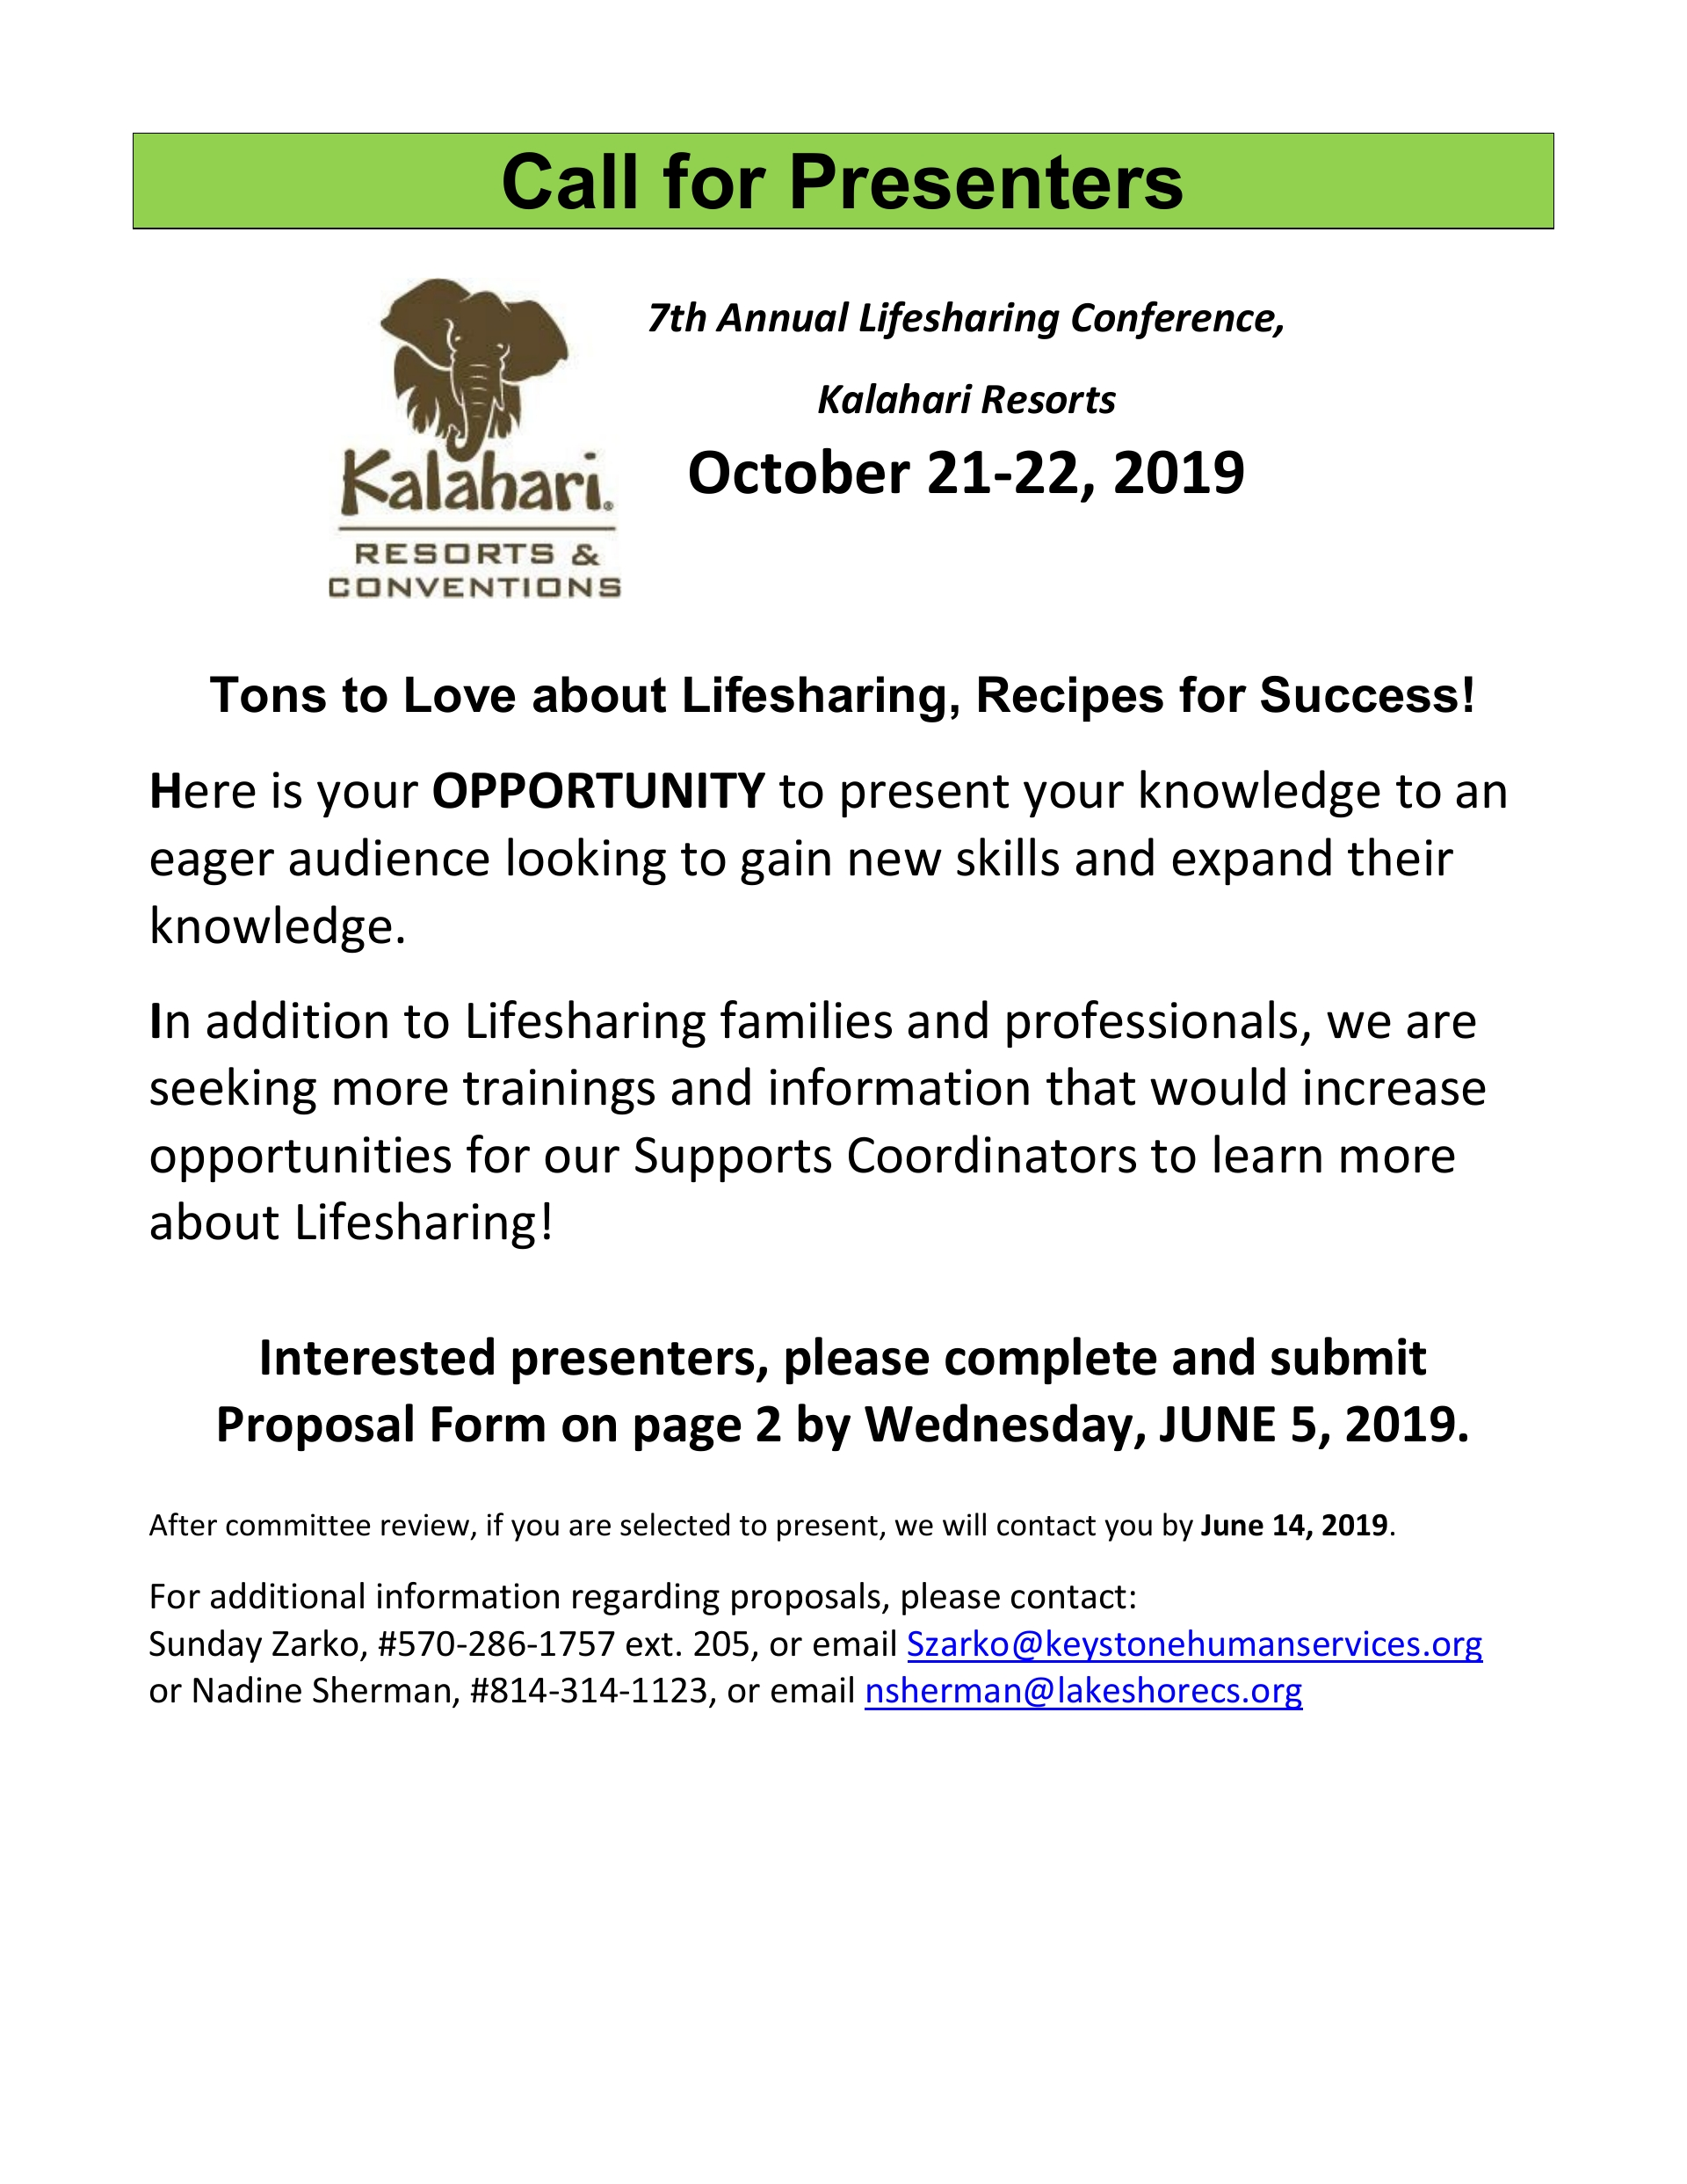 PROPOSALS NEEDED for 7th Annual Lifesharing Conference